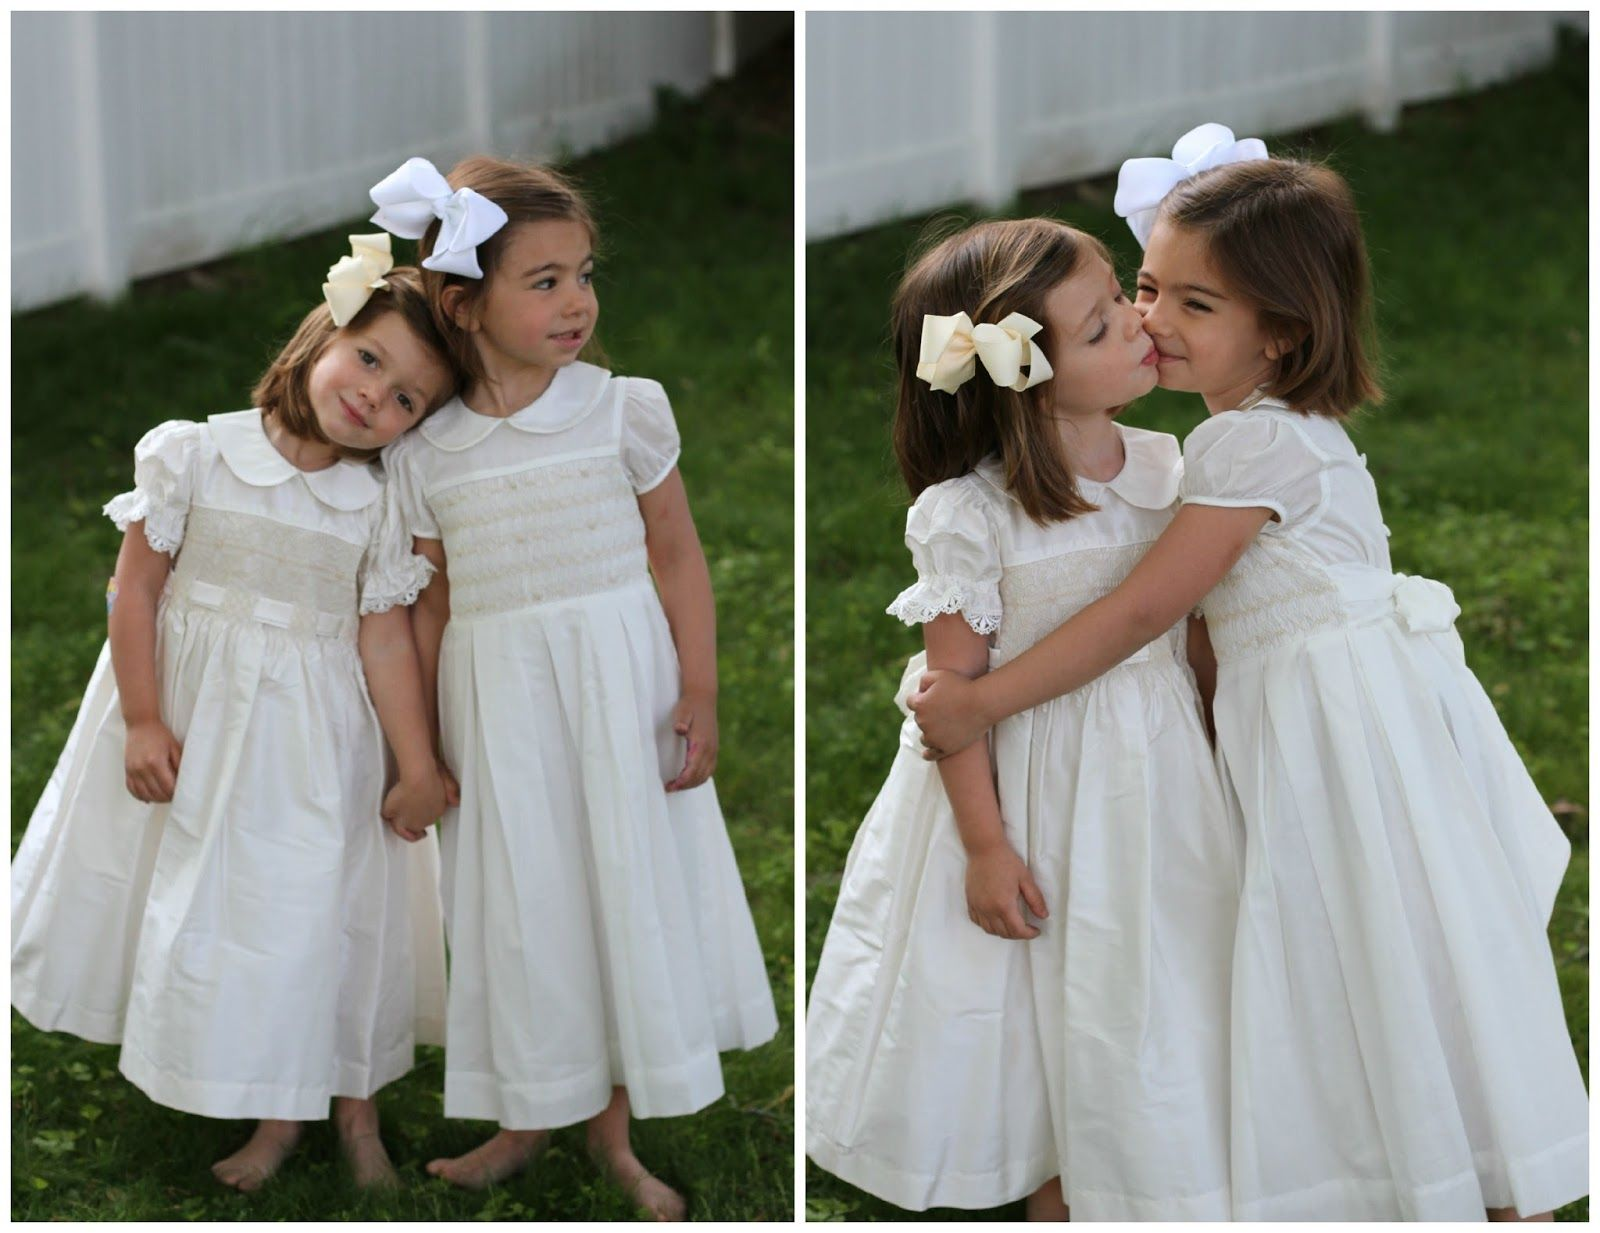 Silk Or Cotton Flower Girl Dresses Decisions Decisions Stunning